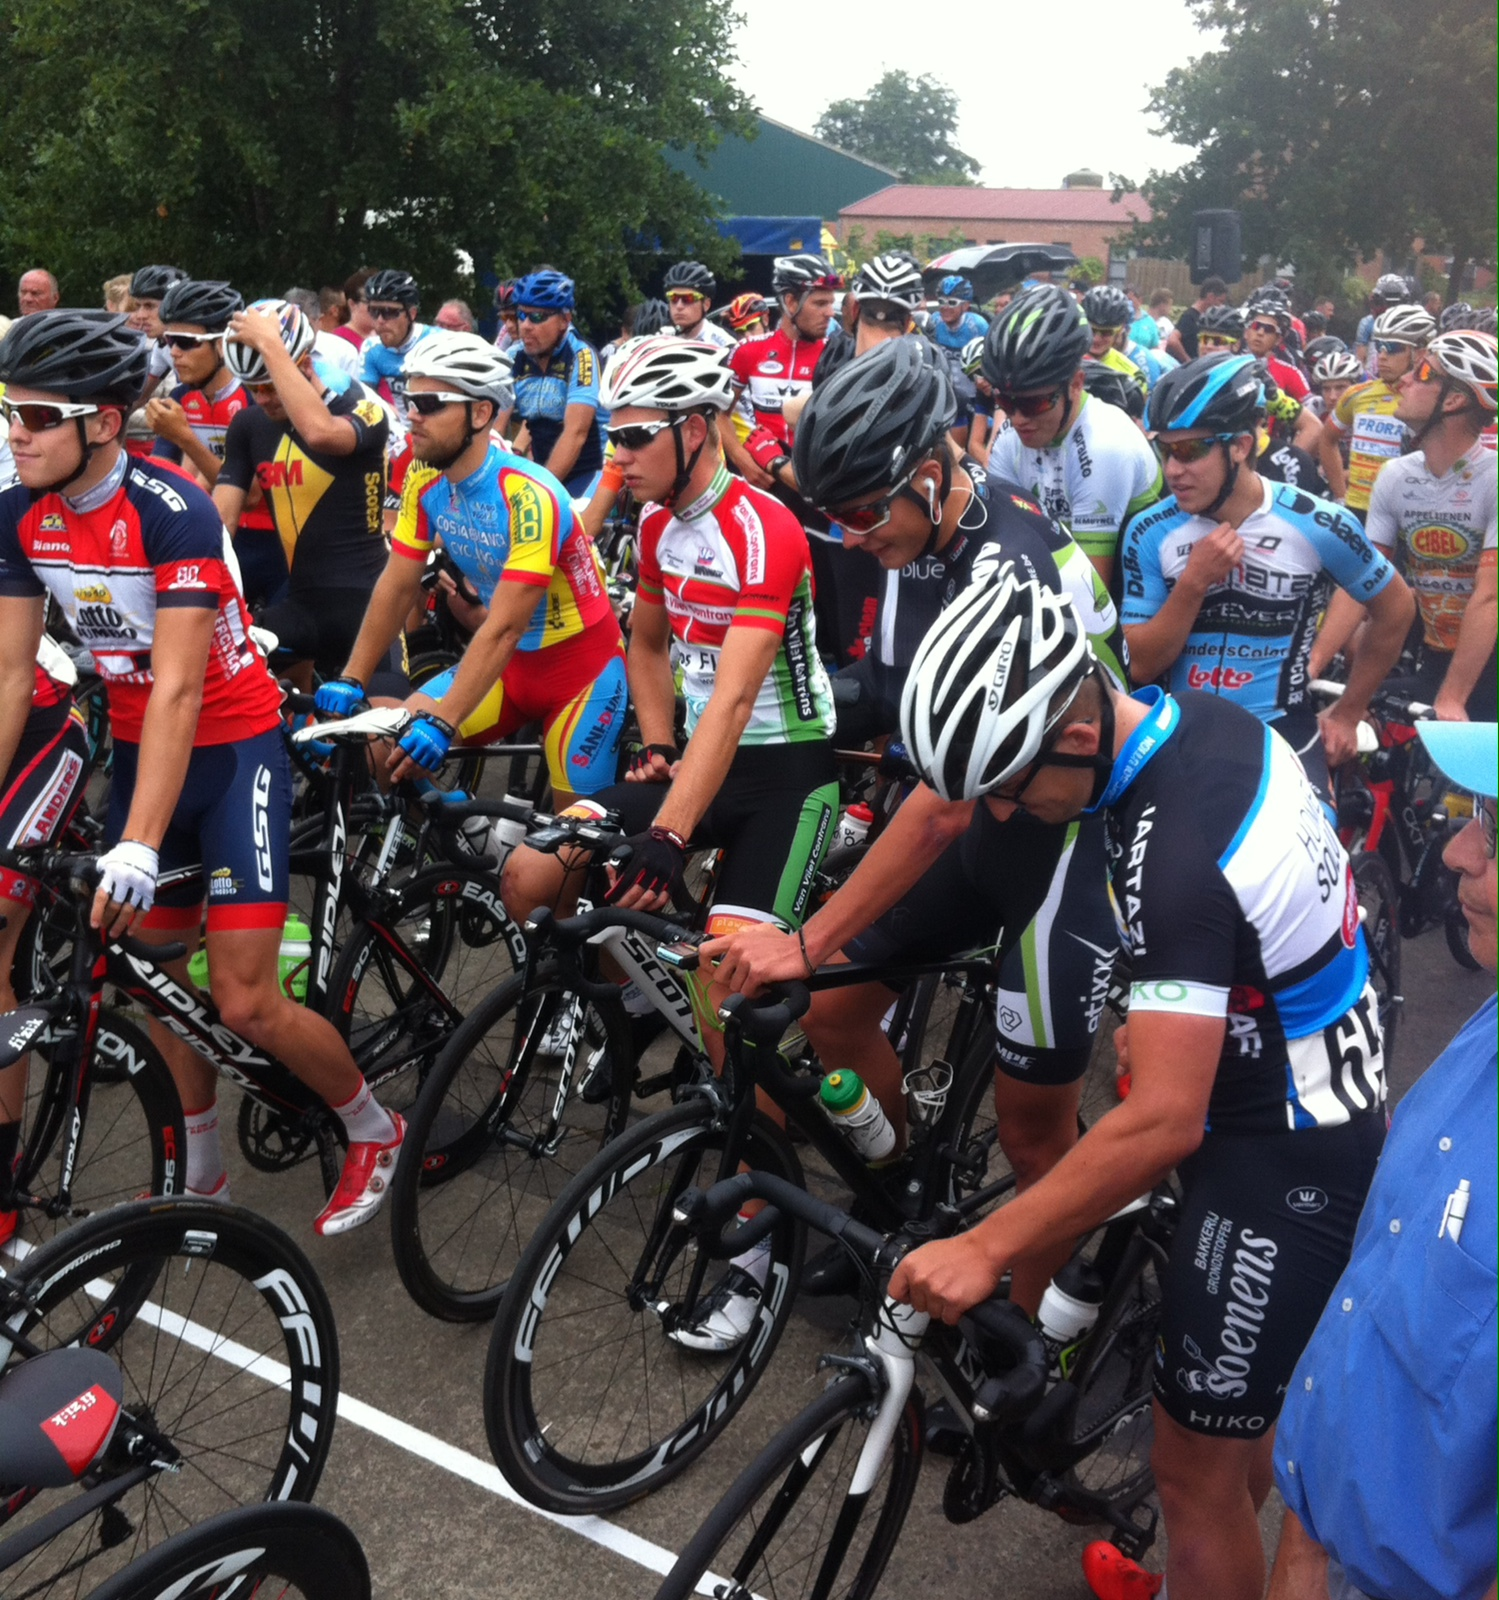 Sinaai start line was a crowded affair with 113 starters including the current Belgian Road Champion